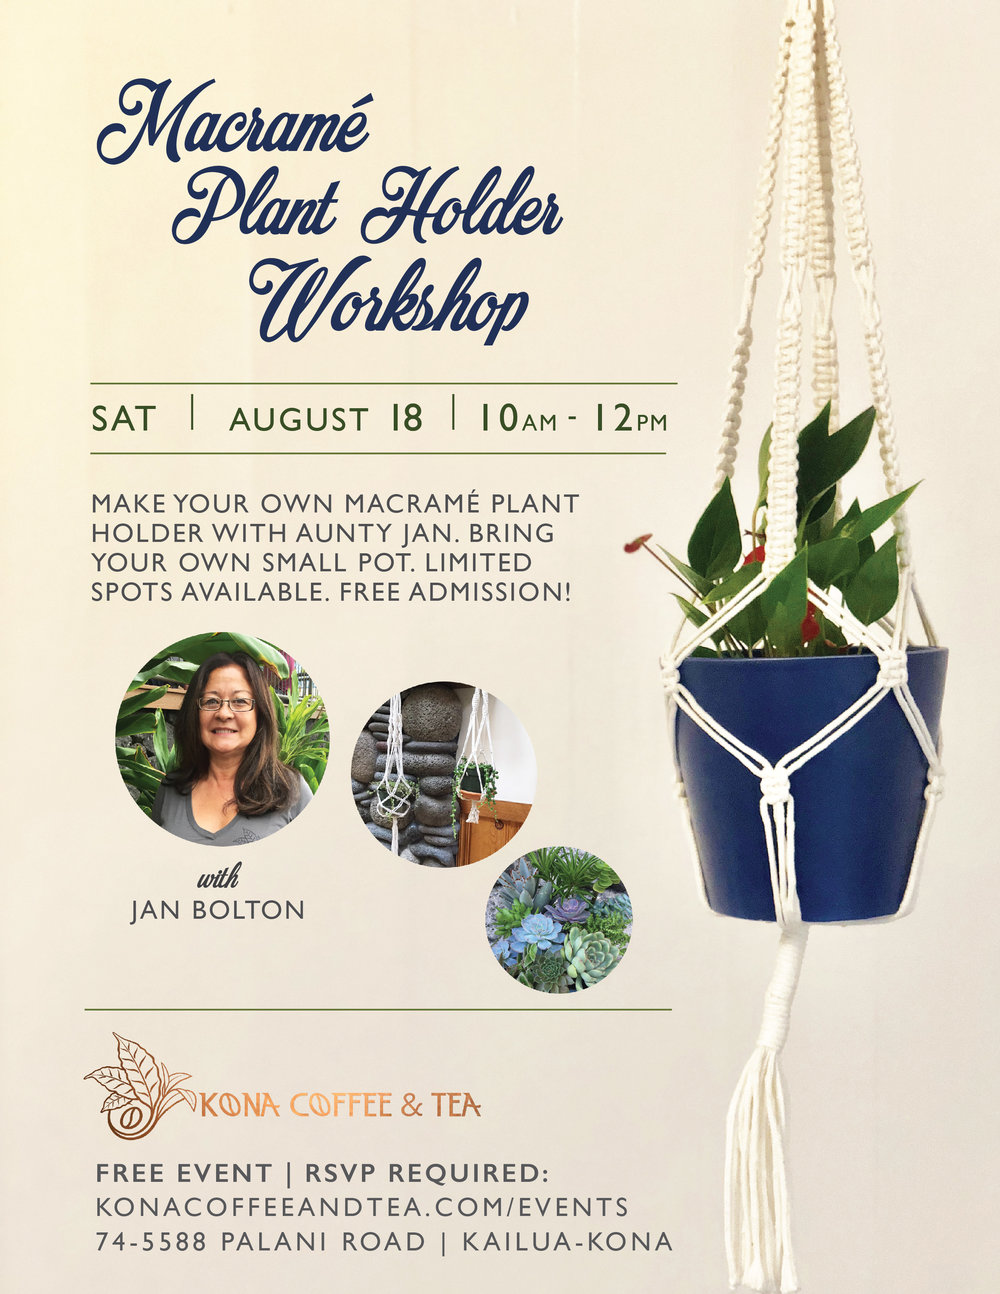 Macramé Plant Holder Workshop_8.9.18_Kona Coffee and Tea-01-01.jpg